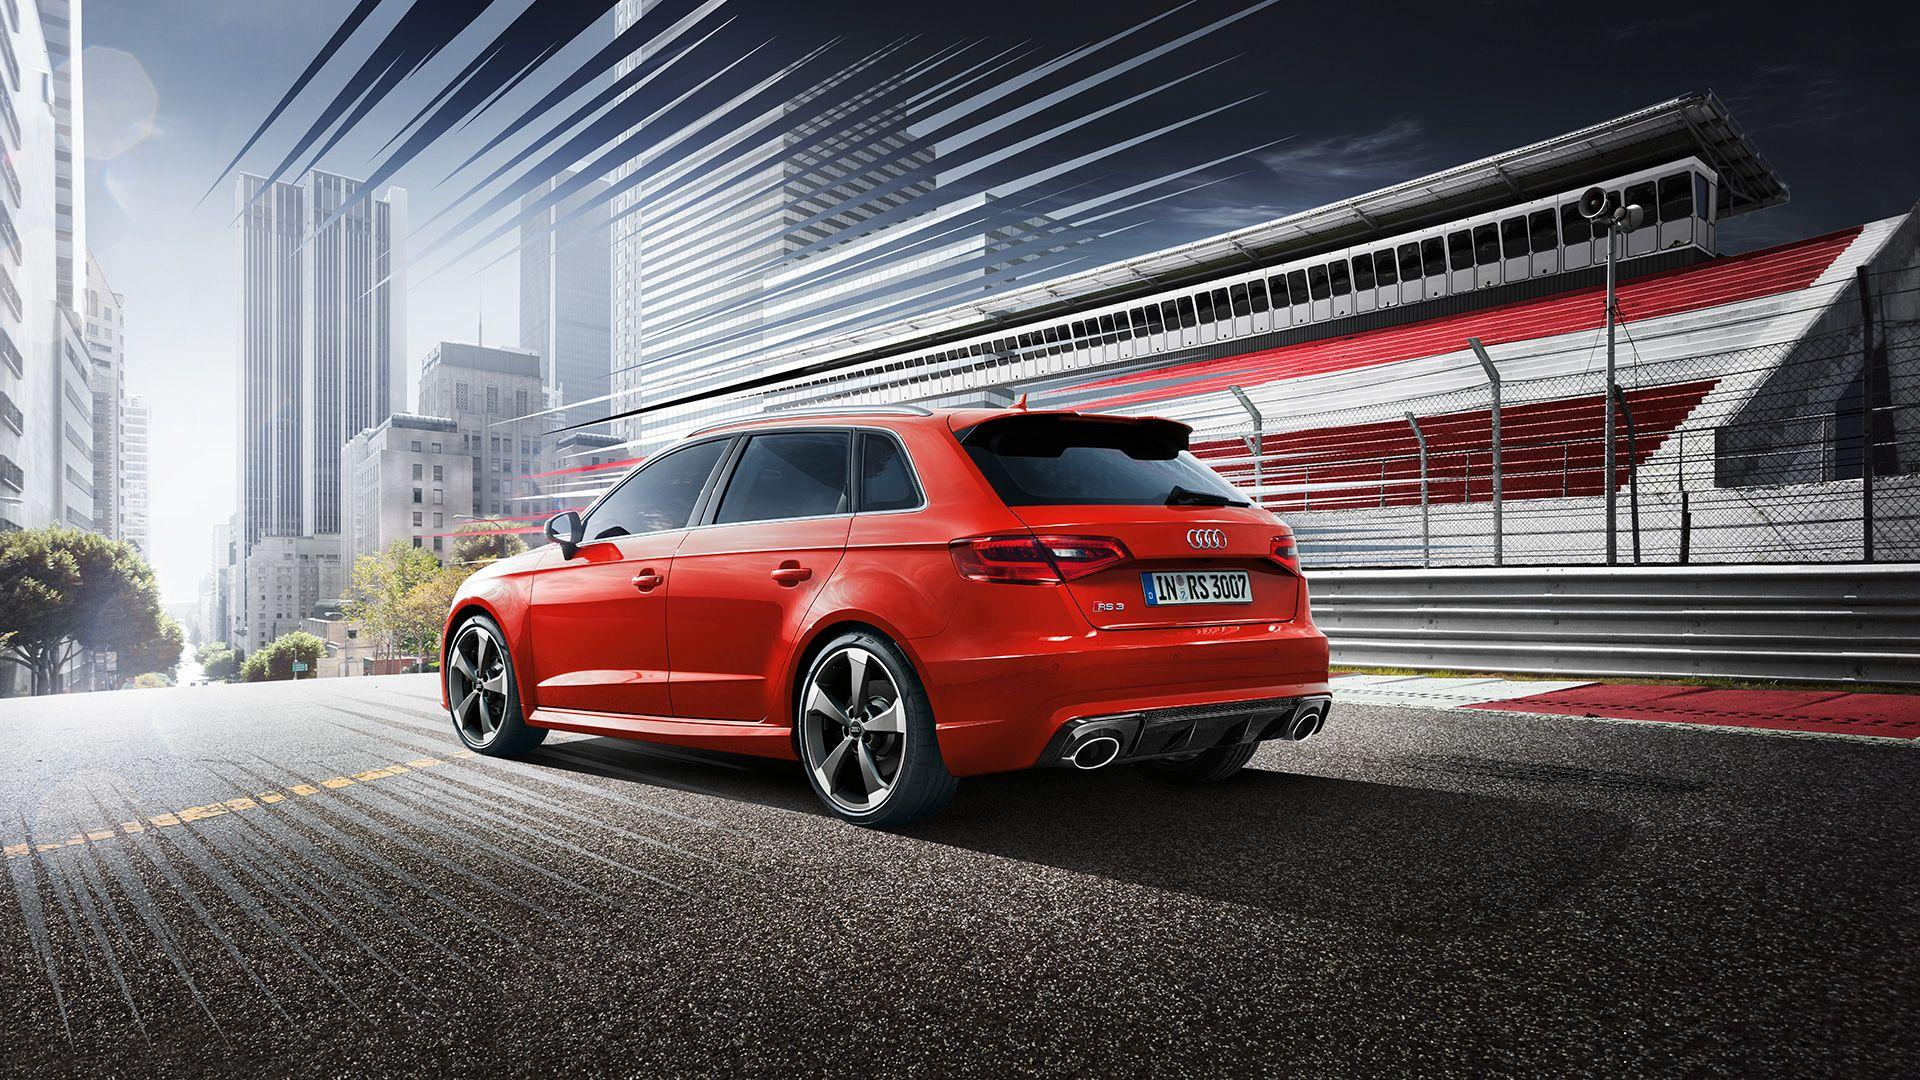 Audi Rs3 Wallpapers, Free 22 Audi Rs3 Mobile Collection of